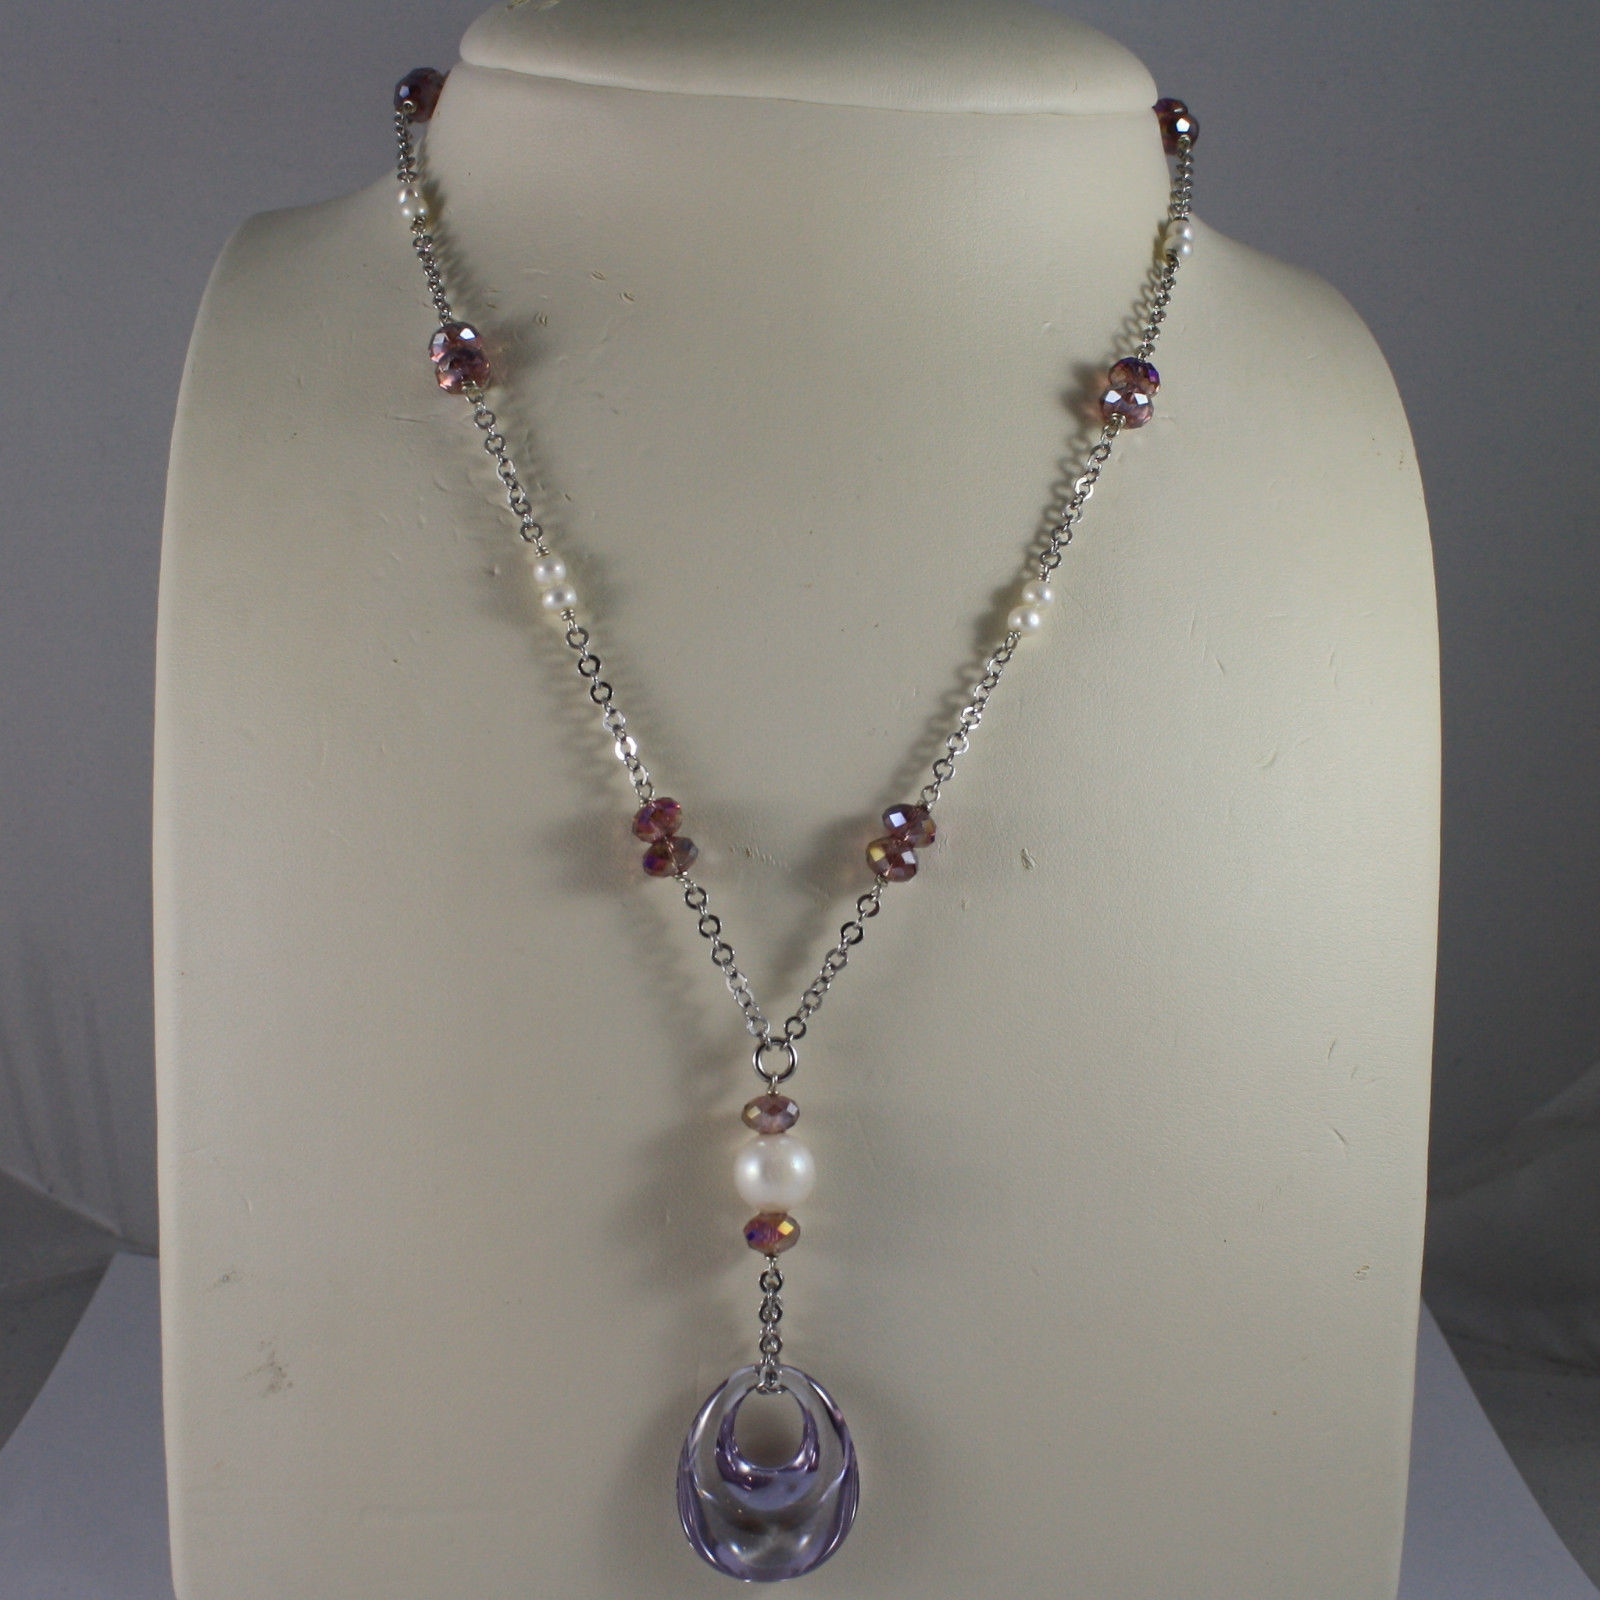 .925 SILVER RHODIUM NECKLACE WITH PURPLE CRYSTALS, PEARLS AND DROP OF ZIRCONIA